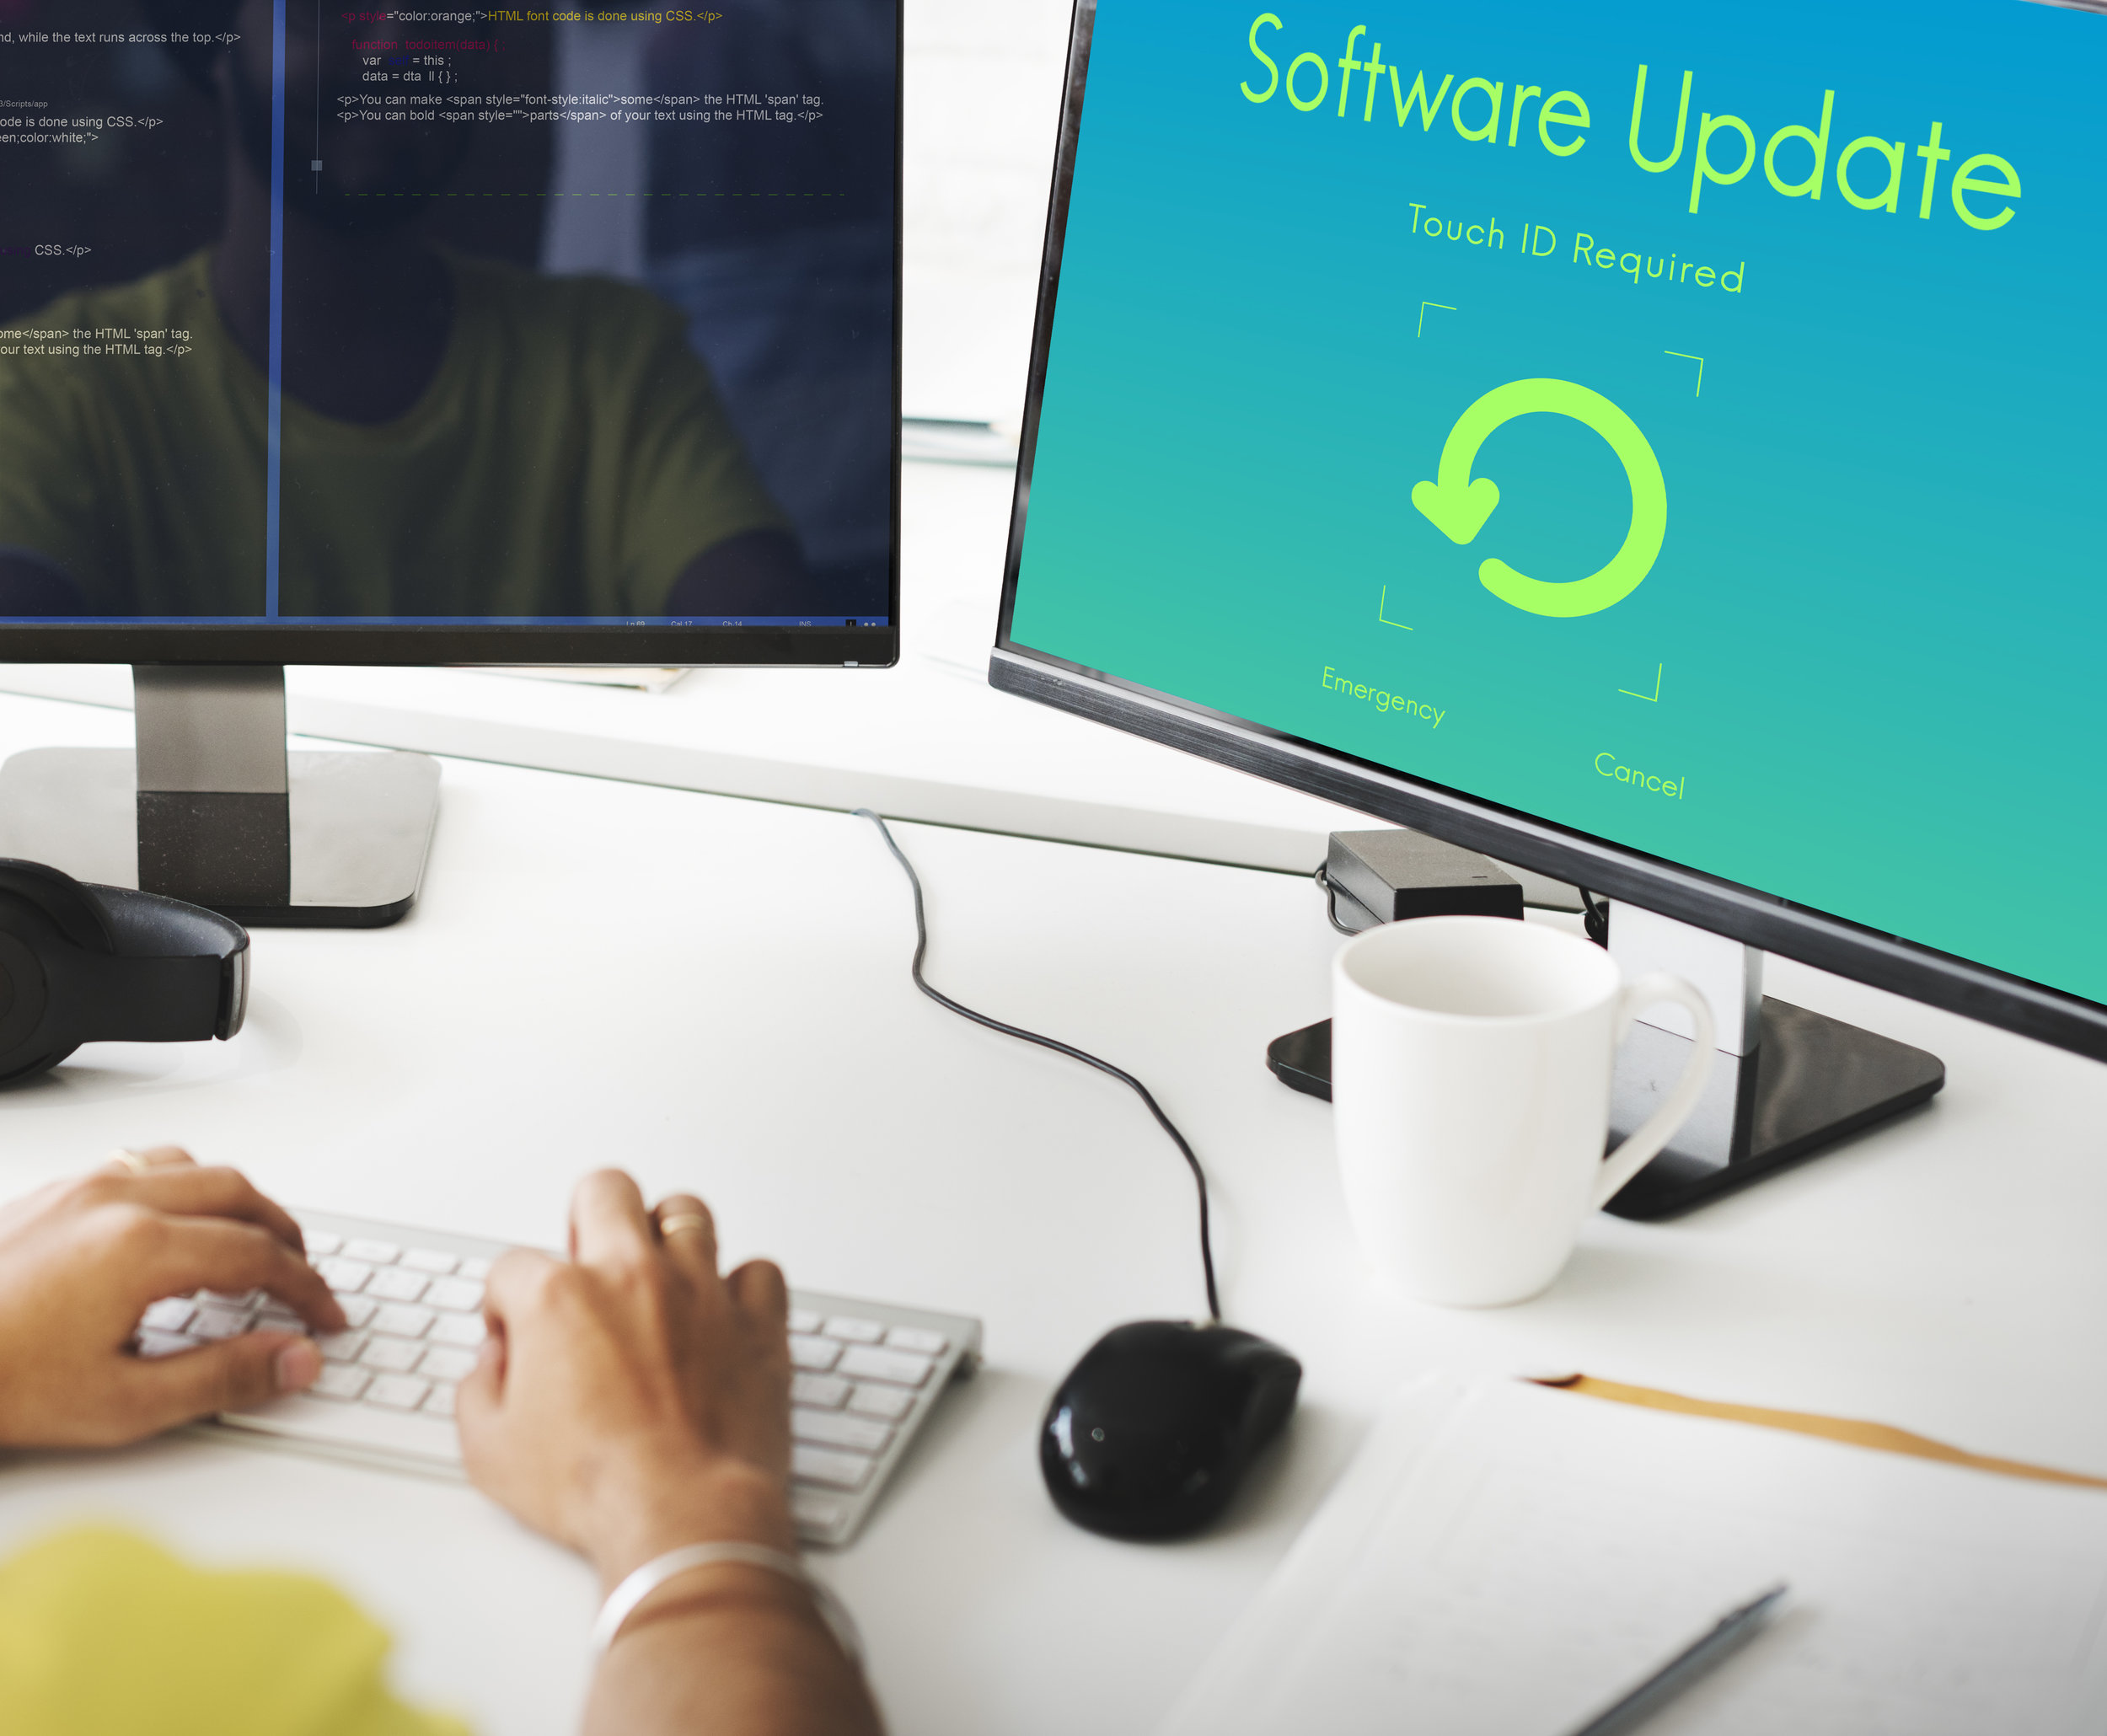 Software - From operating systems to third-party applications, I can troubleshoot any piece of software that is, or runs, on Mac OSX. From installations to upgrades and everything in between, rest-assured we'll get you updated in no time!